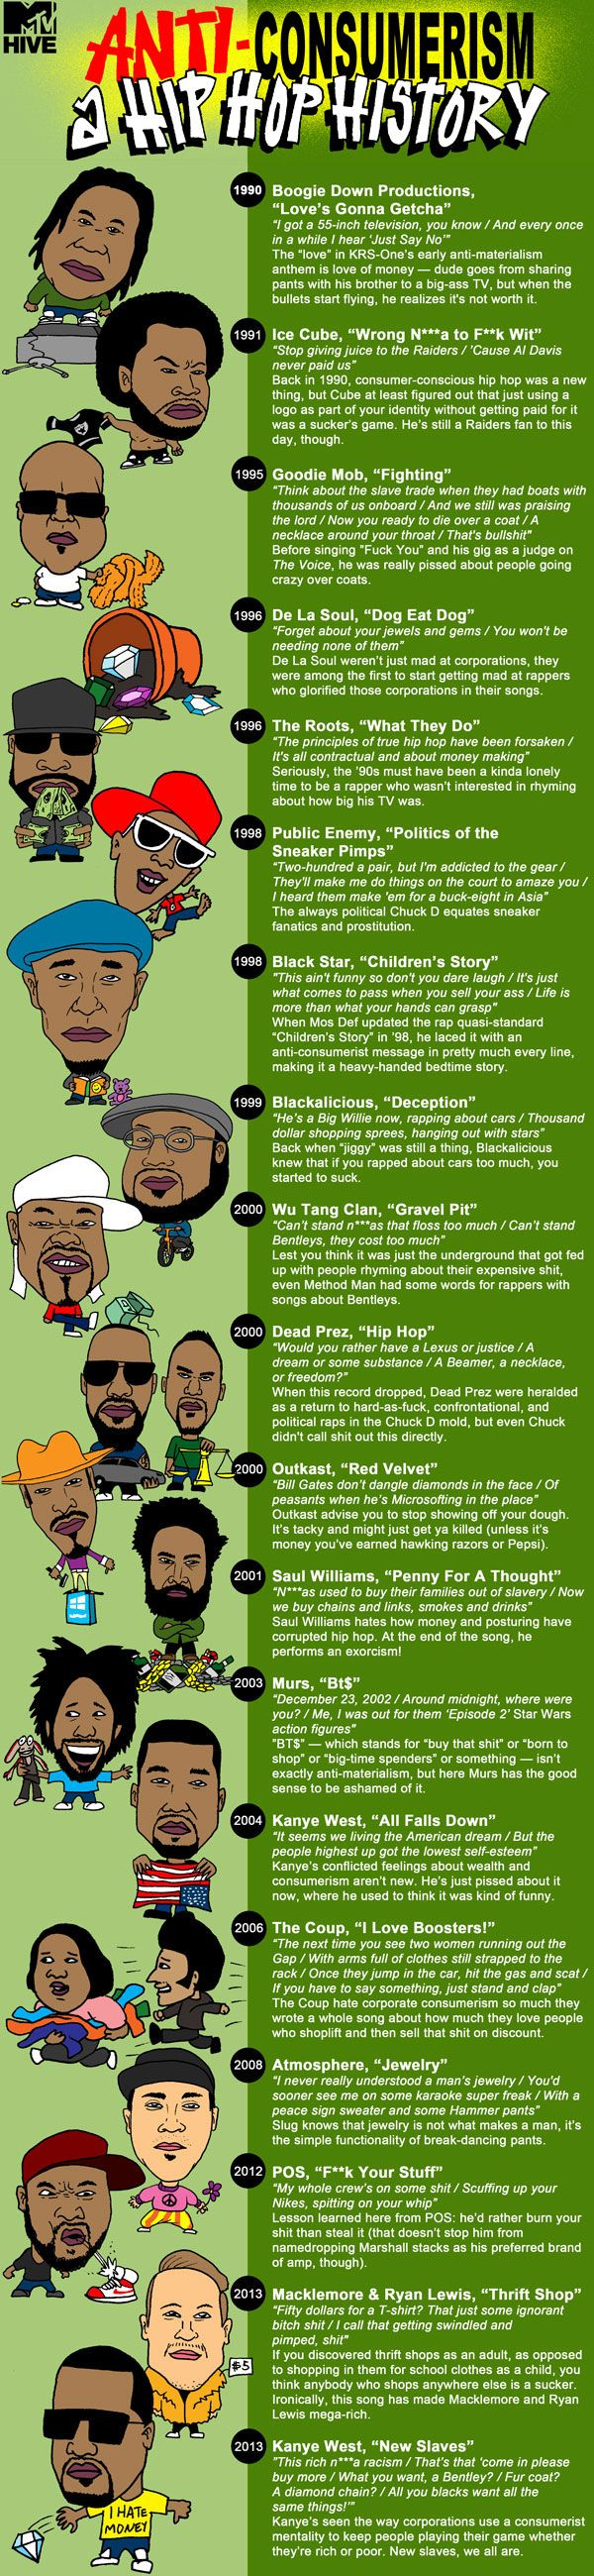 """""""Anti-Consumerism: A Hip Hop History"""" Here are lyrics from rappers over the years about anti-consumerism."""